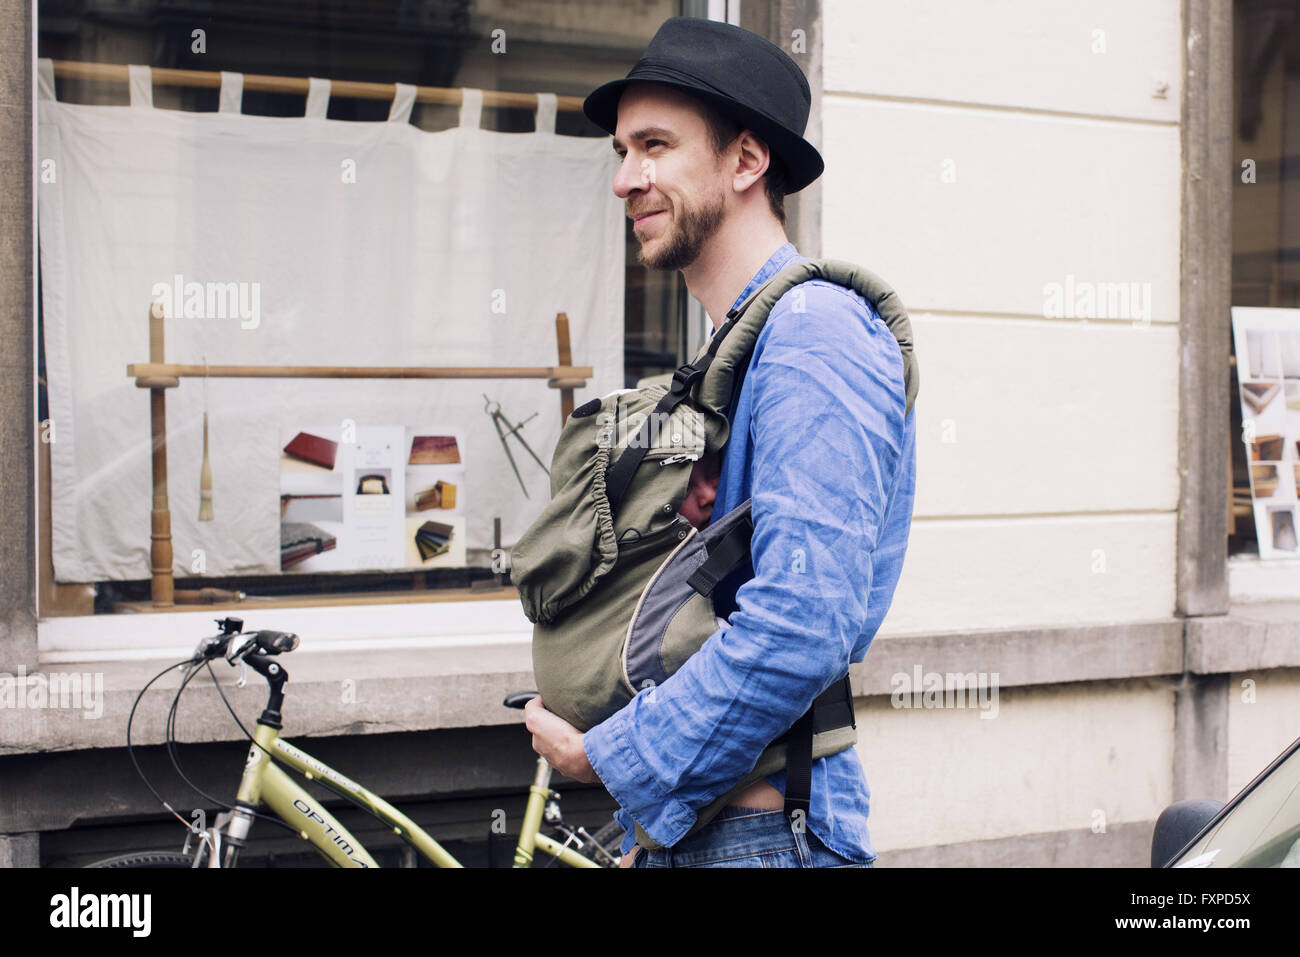 Man out and about in the city with baby in carrier - Stock Image